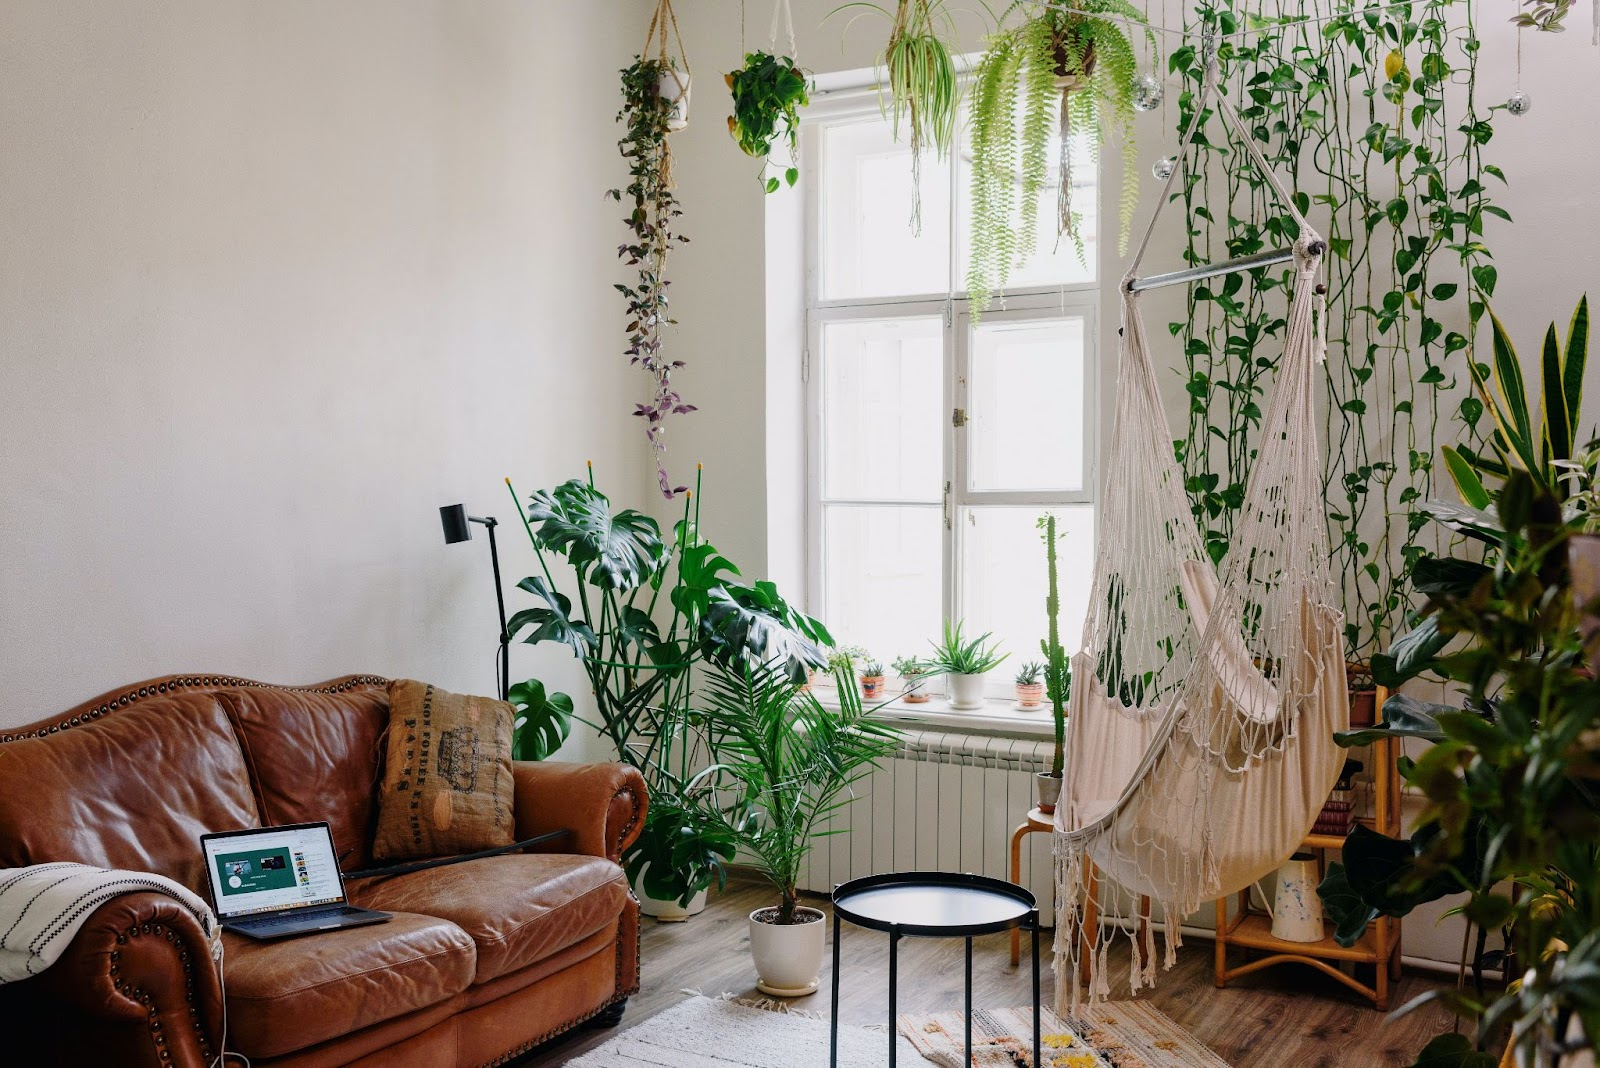 Advice To Create A More Eco-Friendly Home